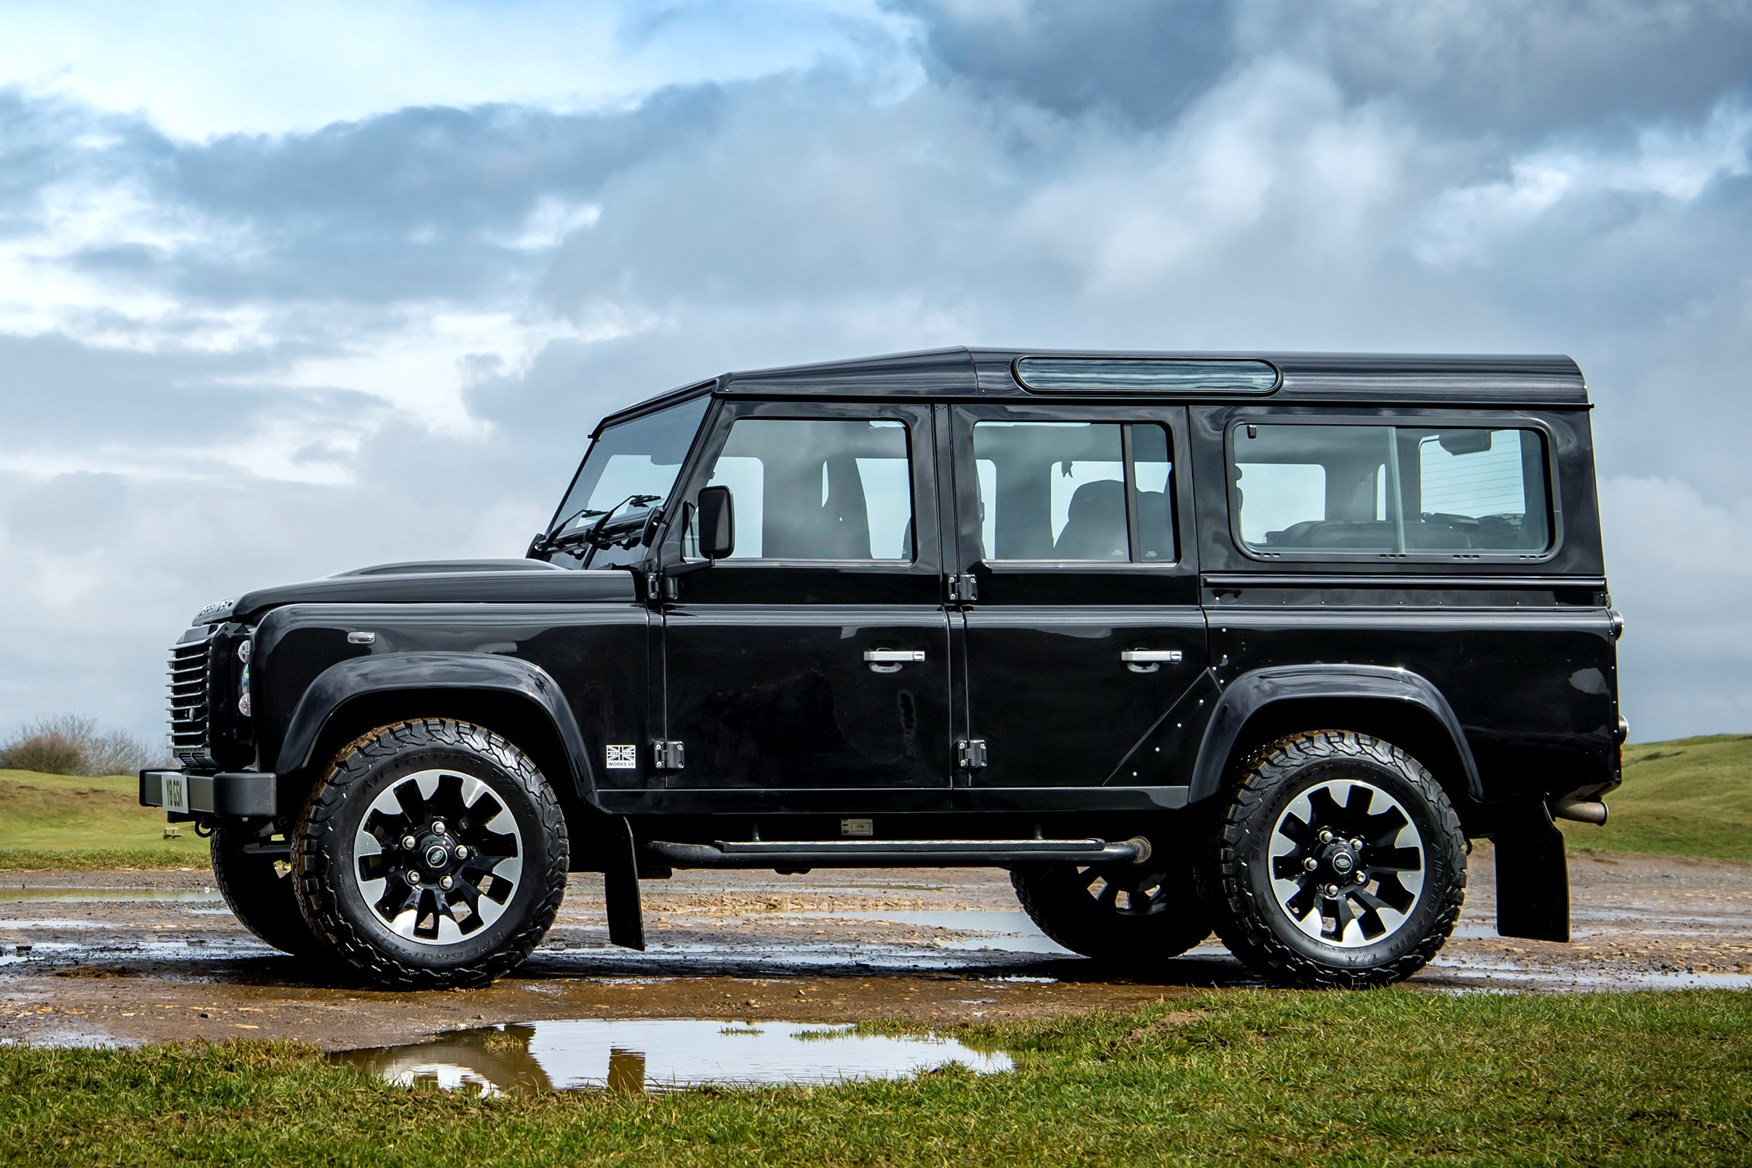 Land Rover >> Land Rover Defender 110 Station Wagon (1990 - 2017) Photos